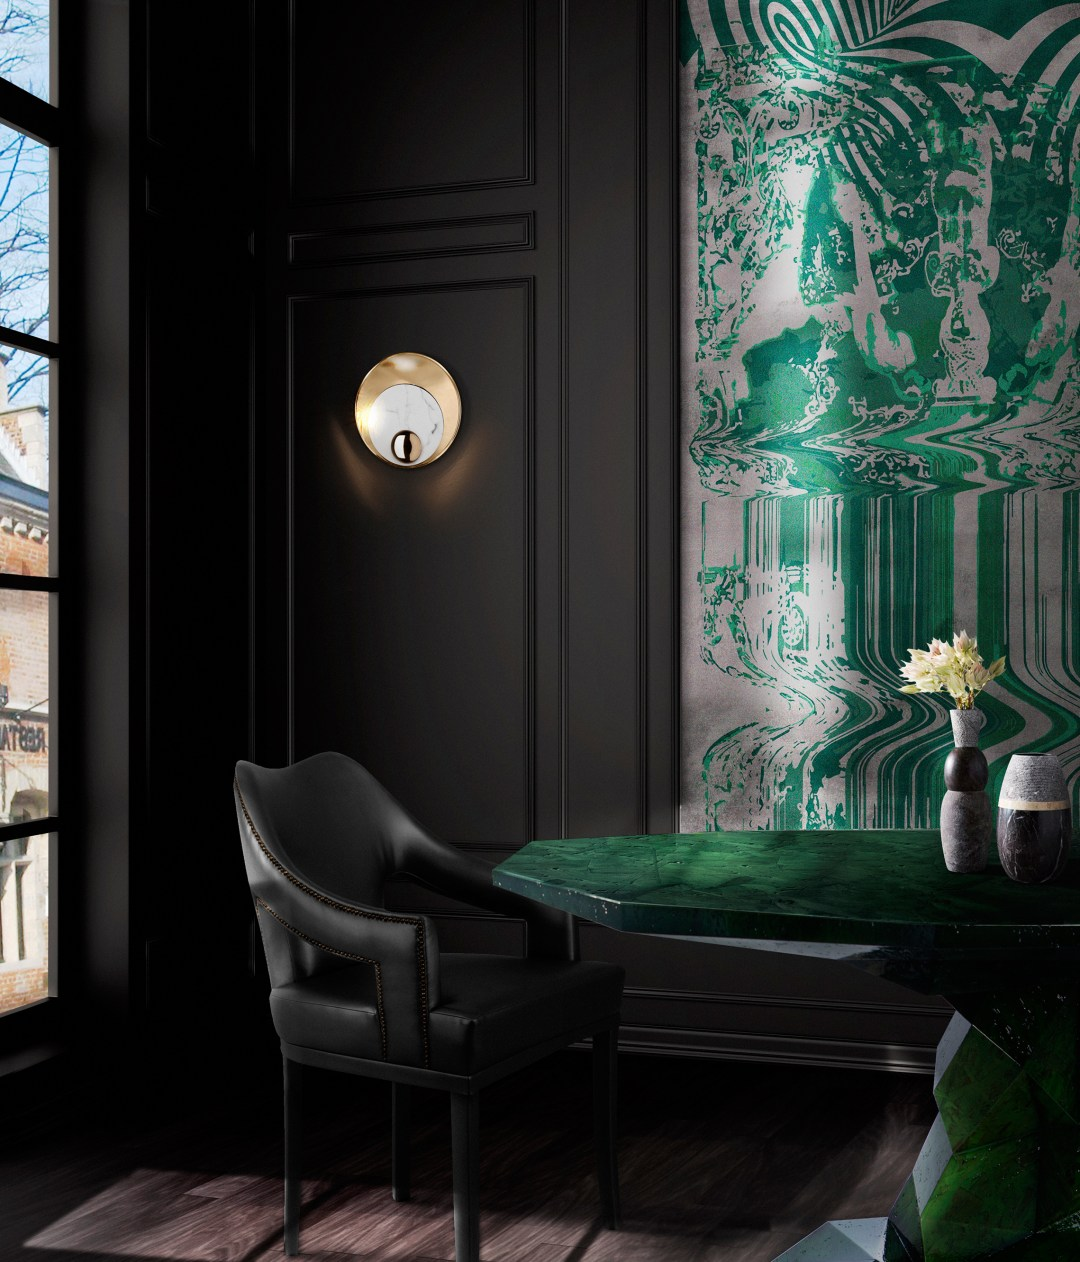 Brabbu-Design-Forces-N20-black-Dining-Chair-combined-with-wallpaper-Green-details-1795242-1440x1683 Inspired By Nature: How to Add Green to Your Home